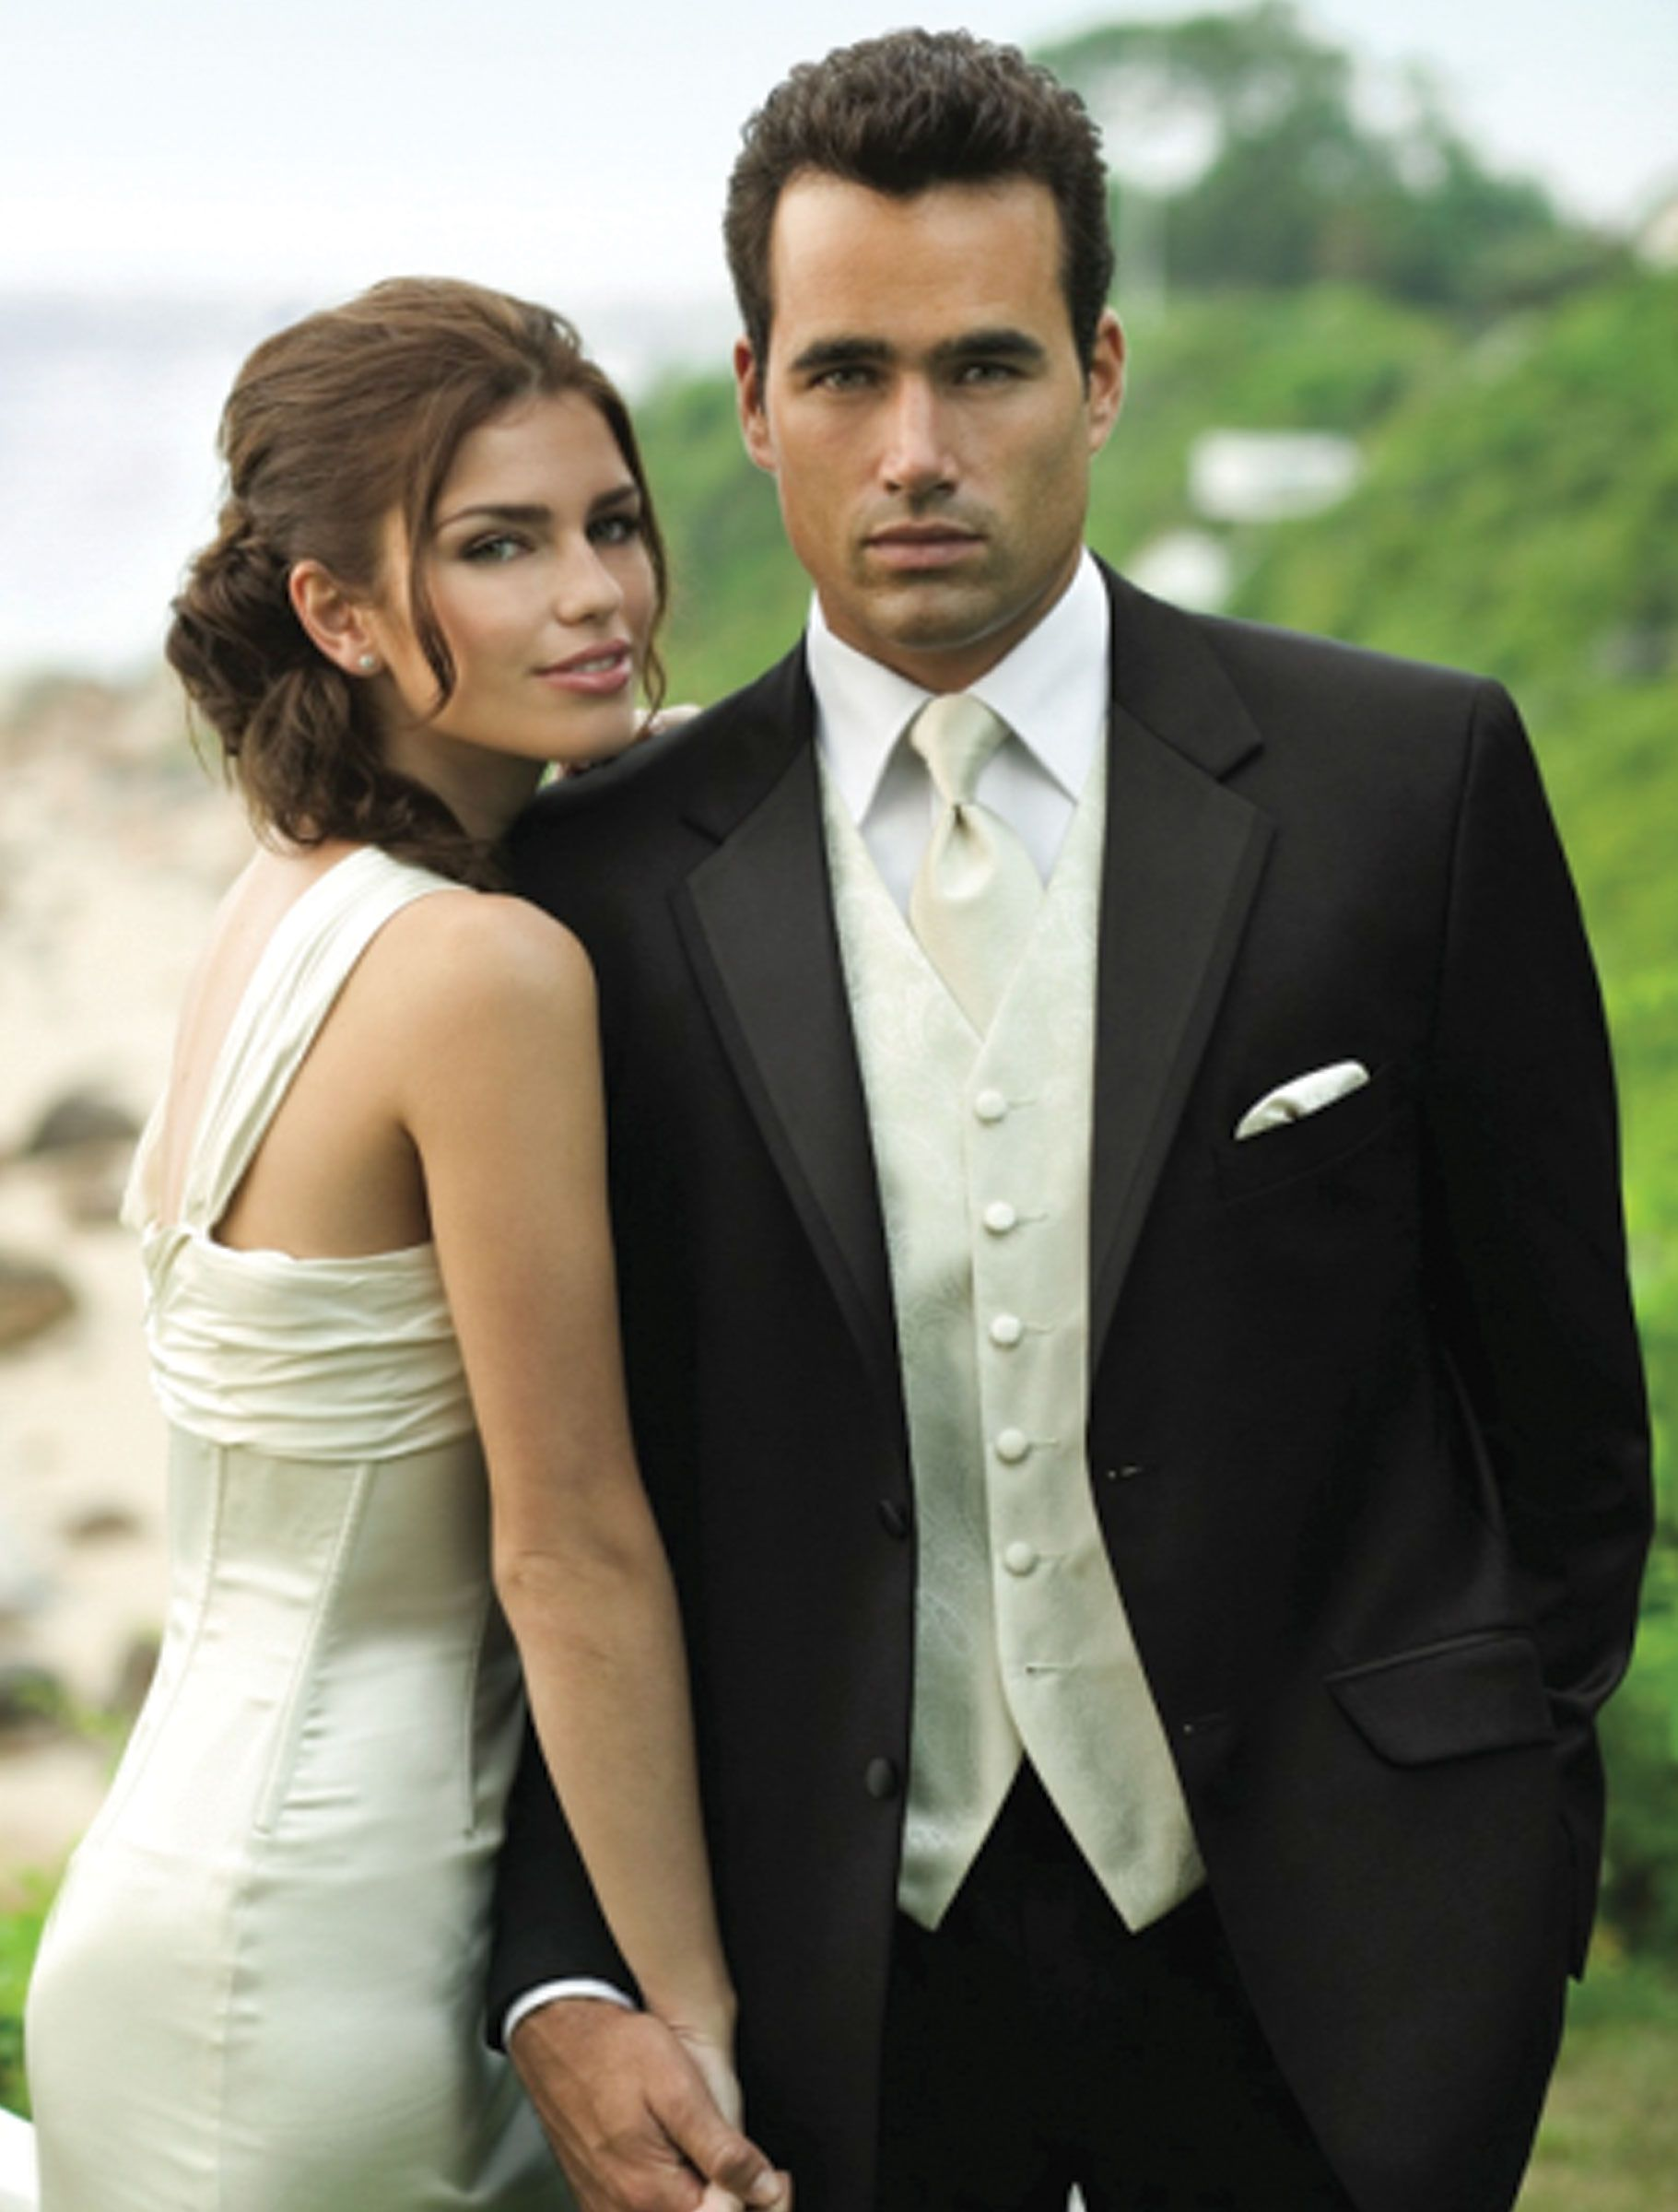 Grooms tux wedding ideas pinterest wedding tuxedo wedding and